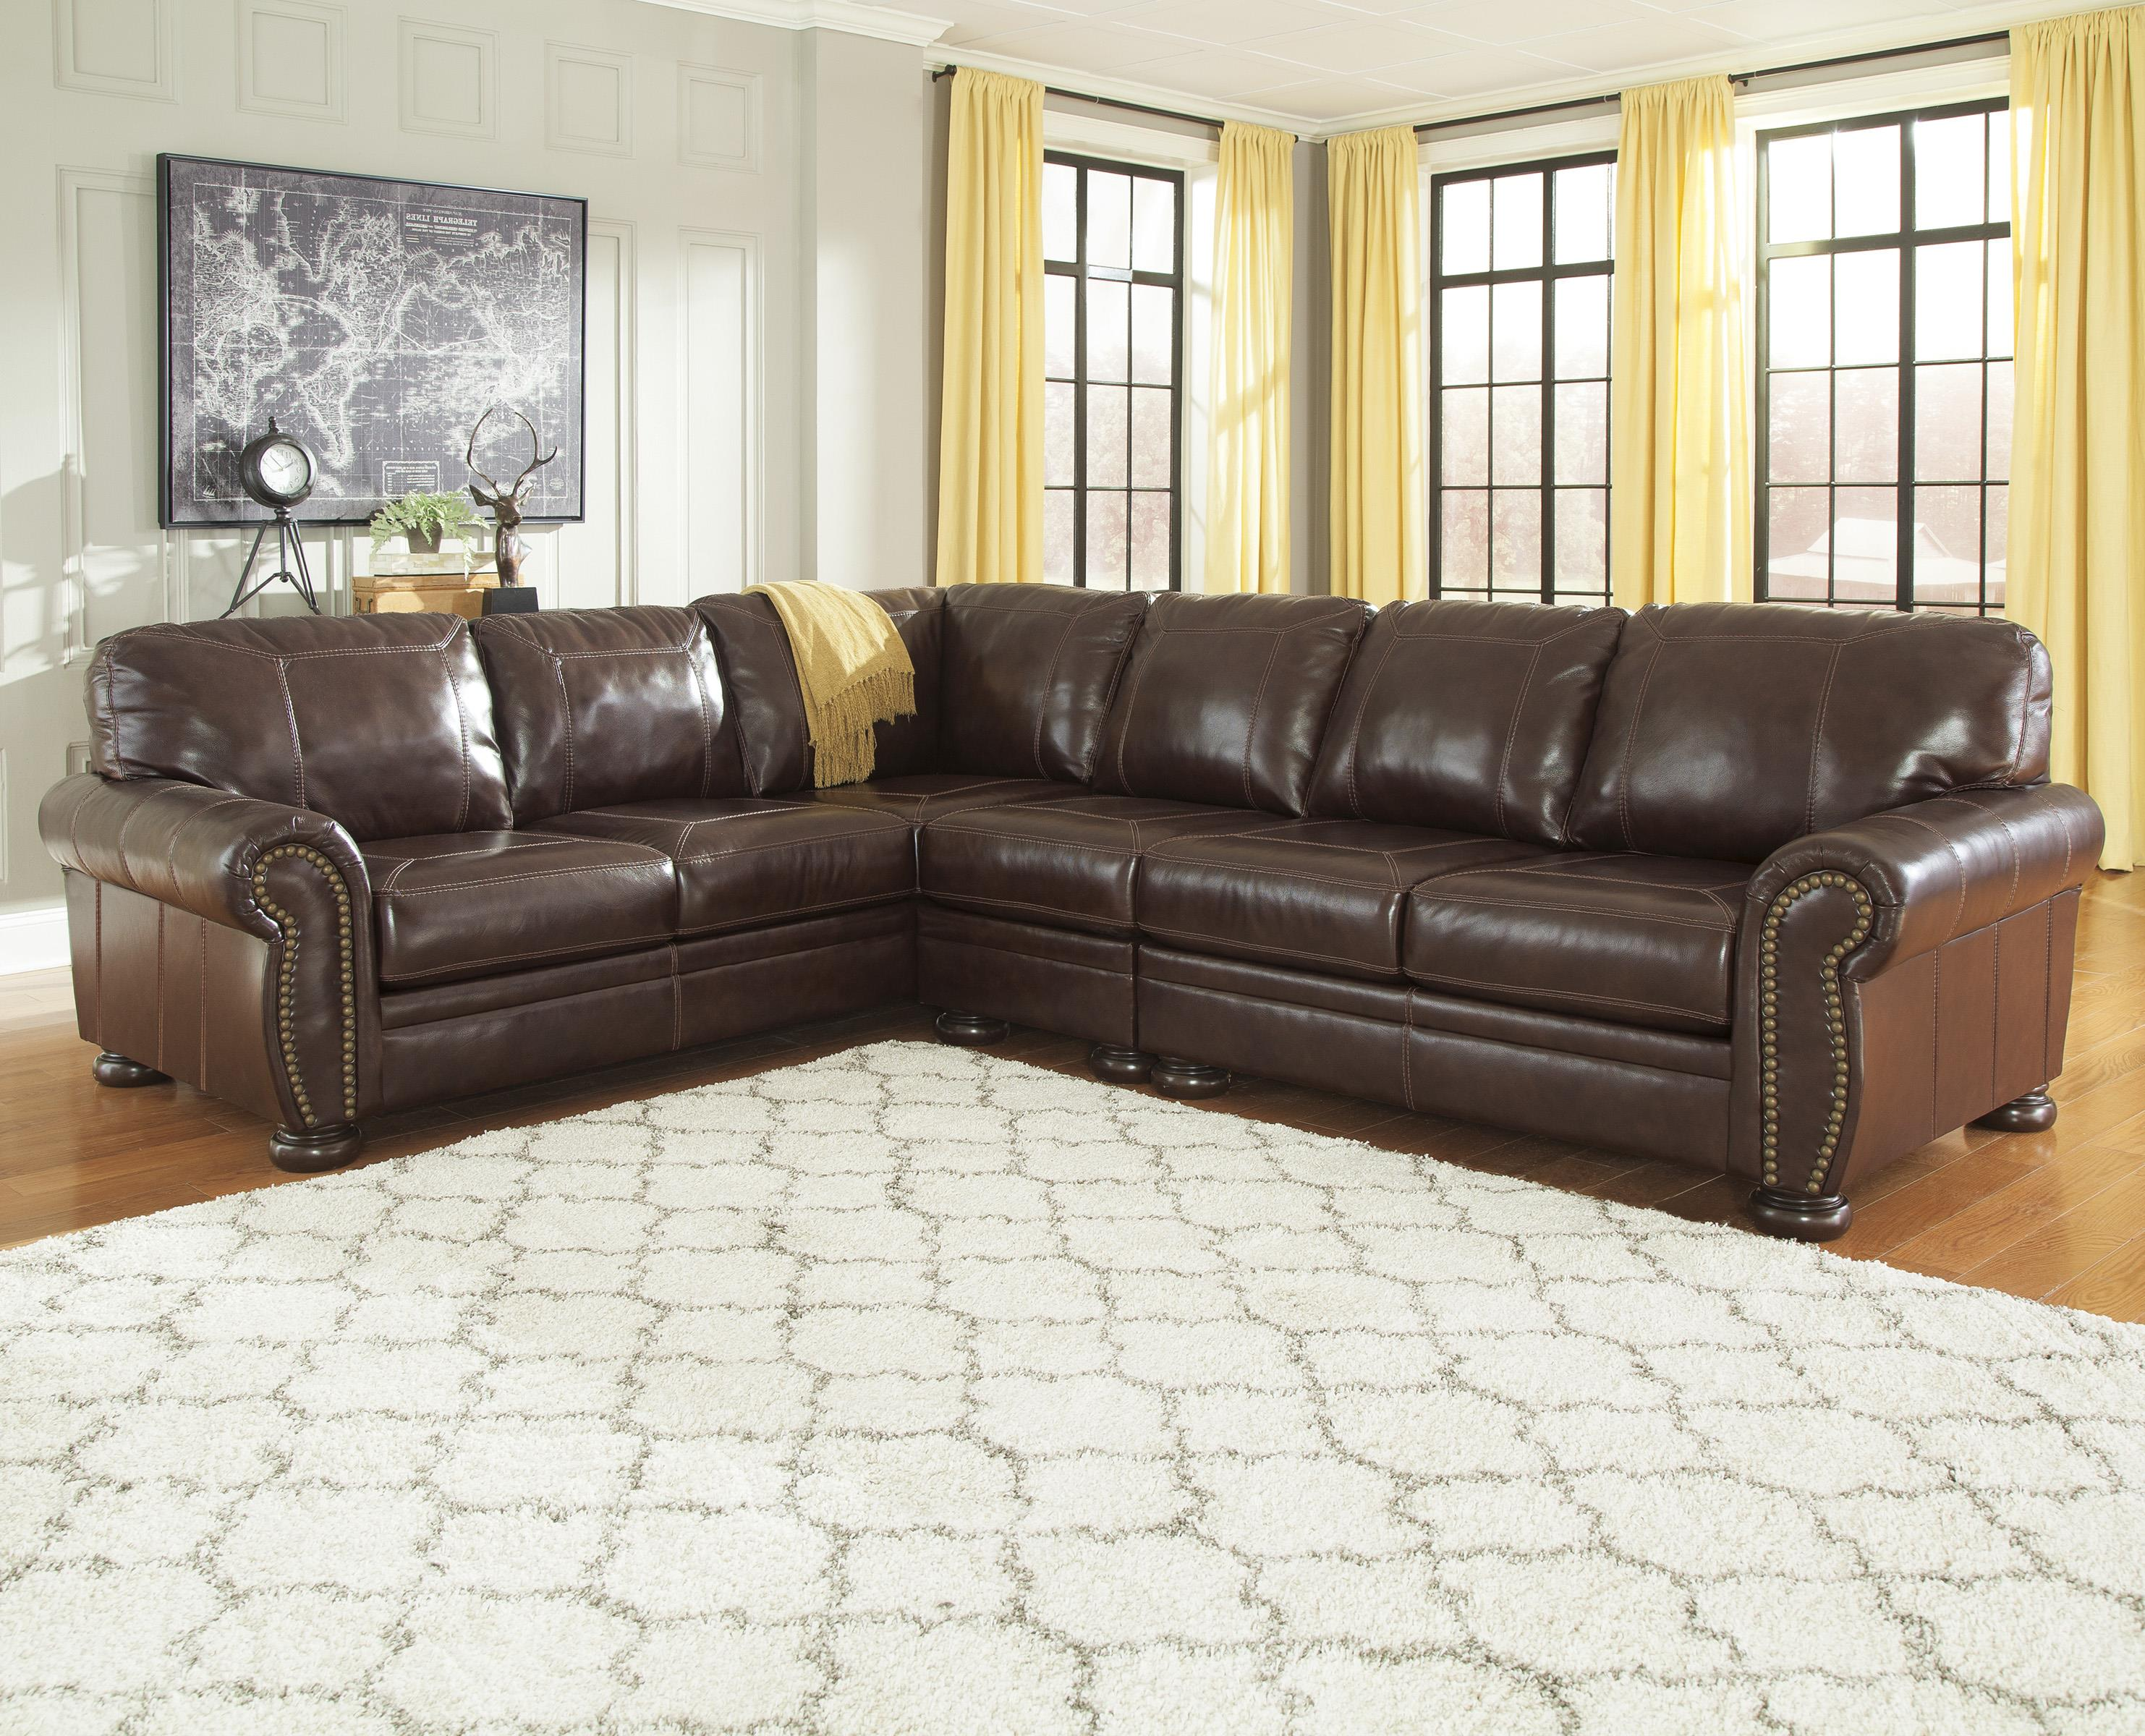 3 Piece Leather Match Sectional with Rolled Arms Nailhead Trim